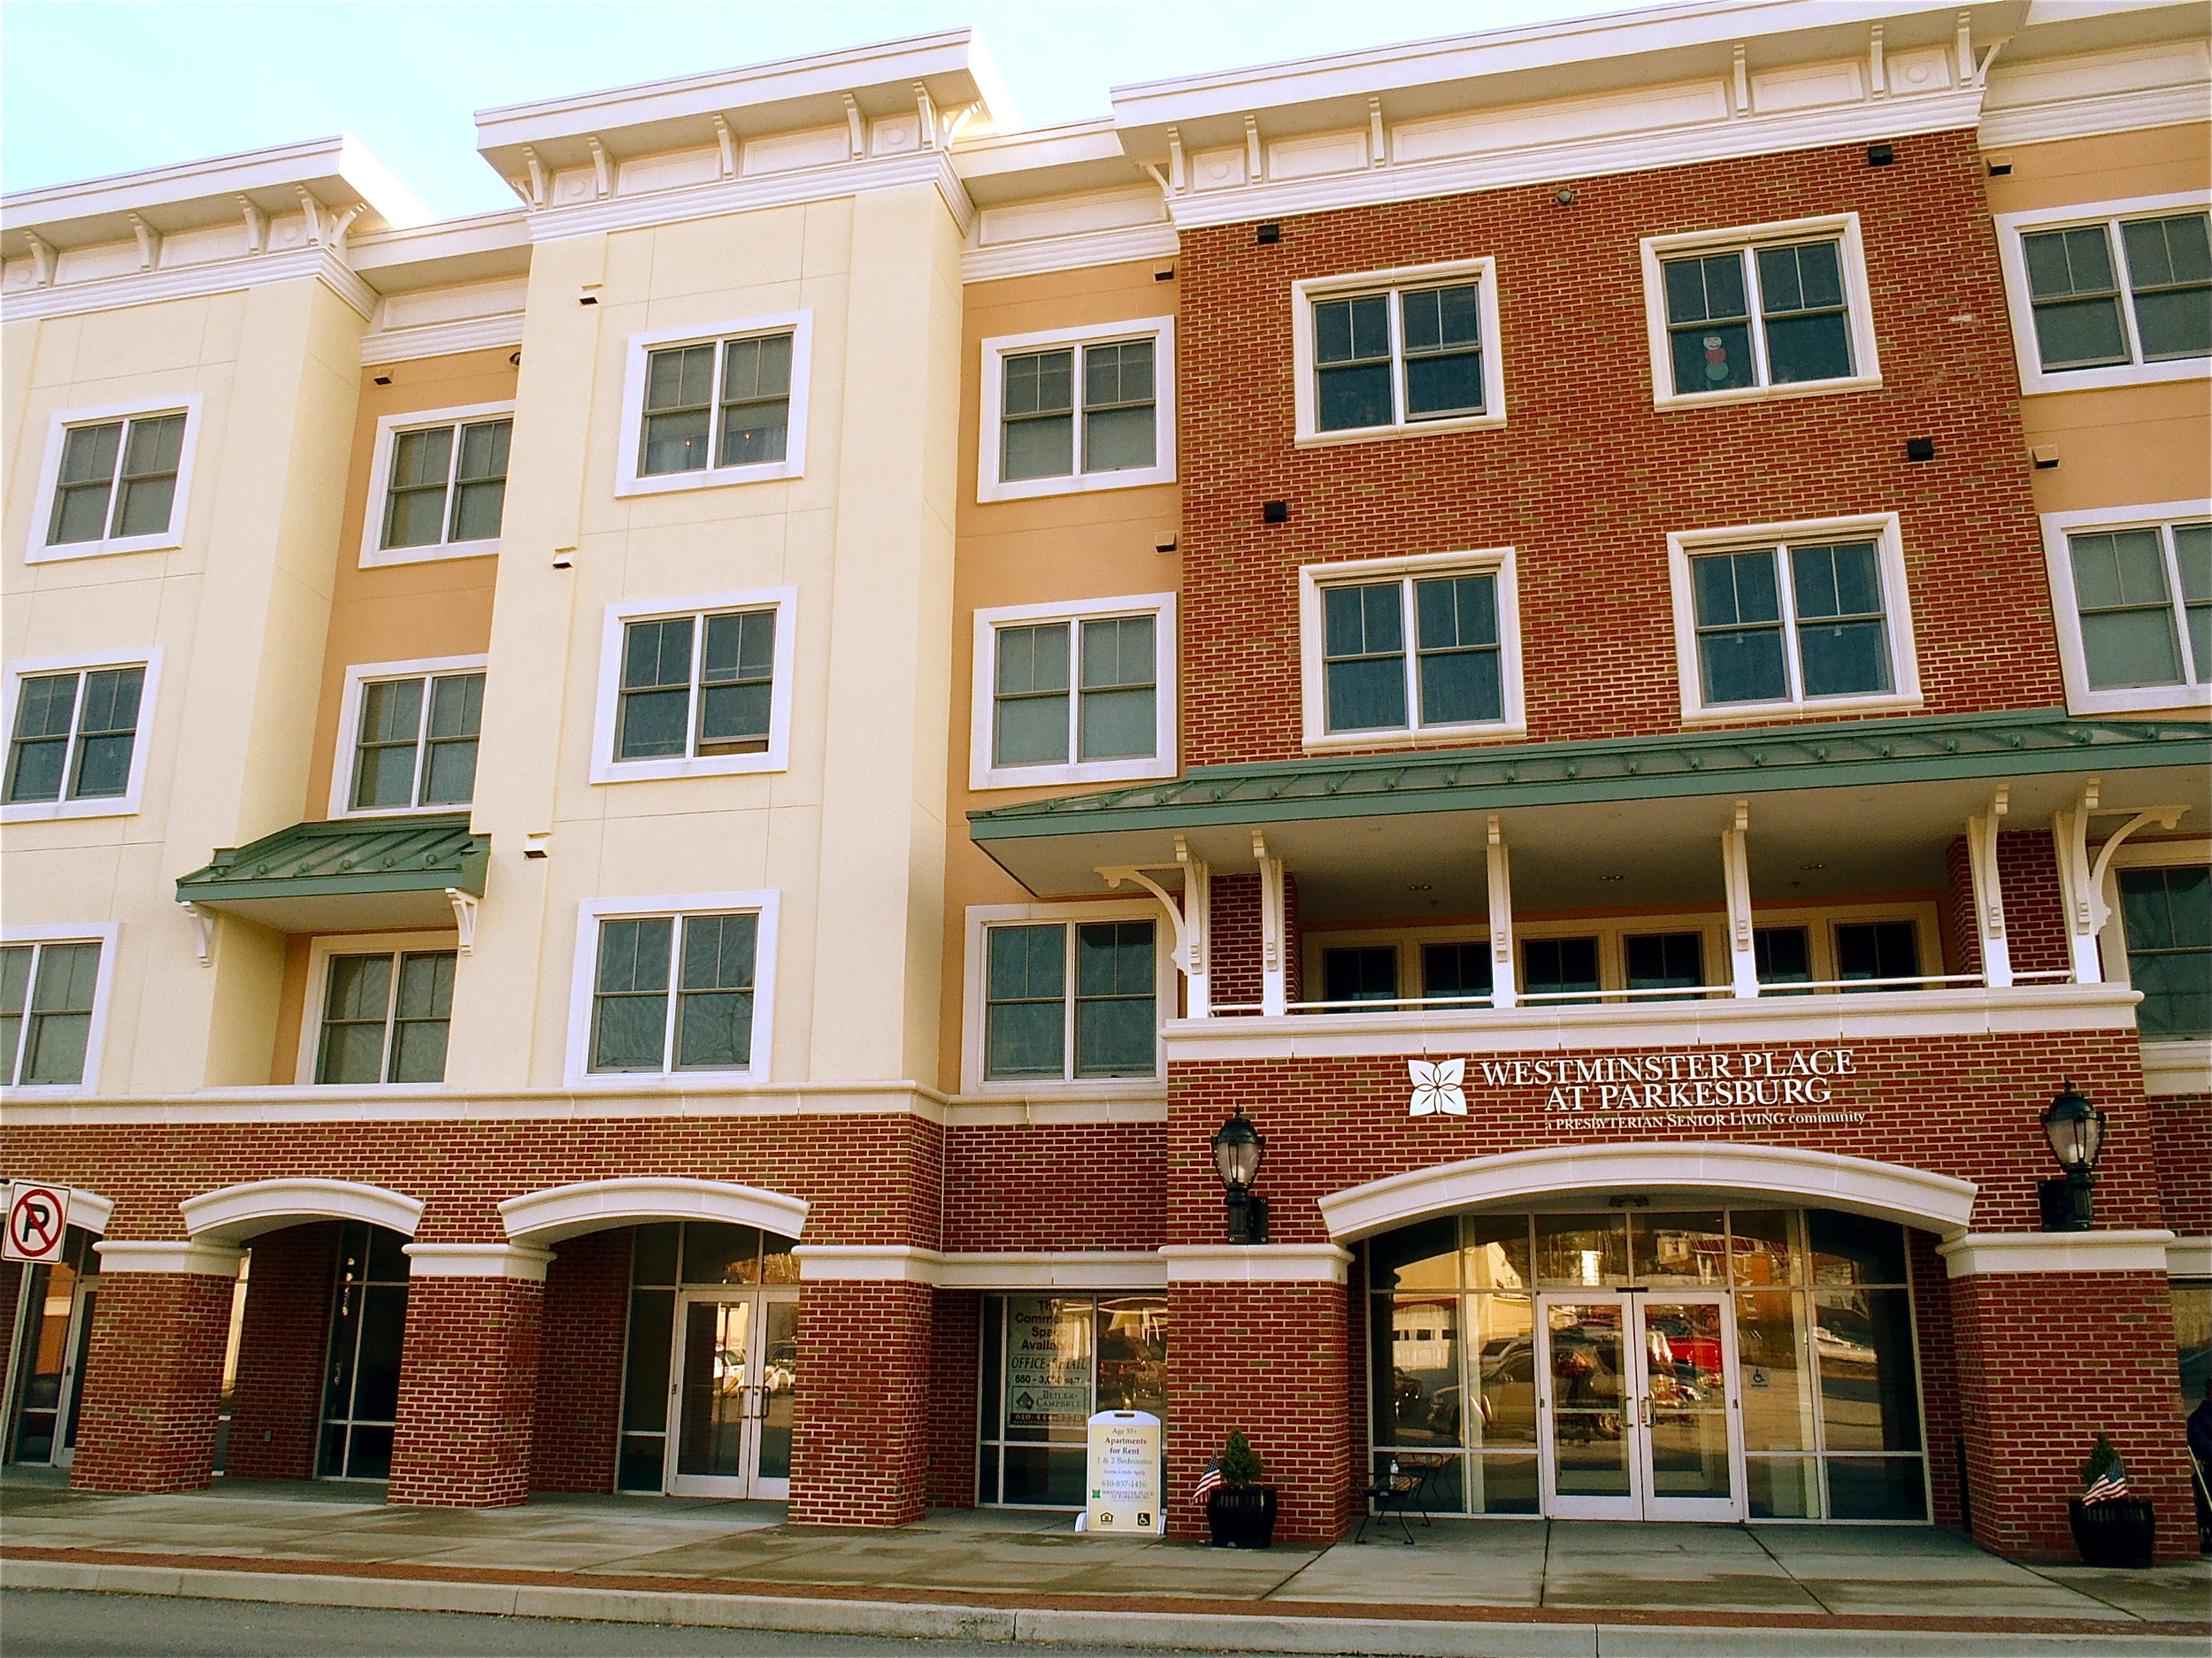 Westminster Place at Parkesburg, PA